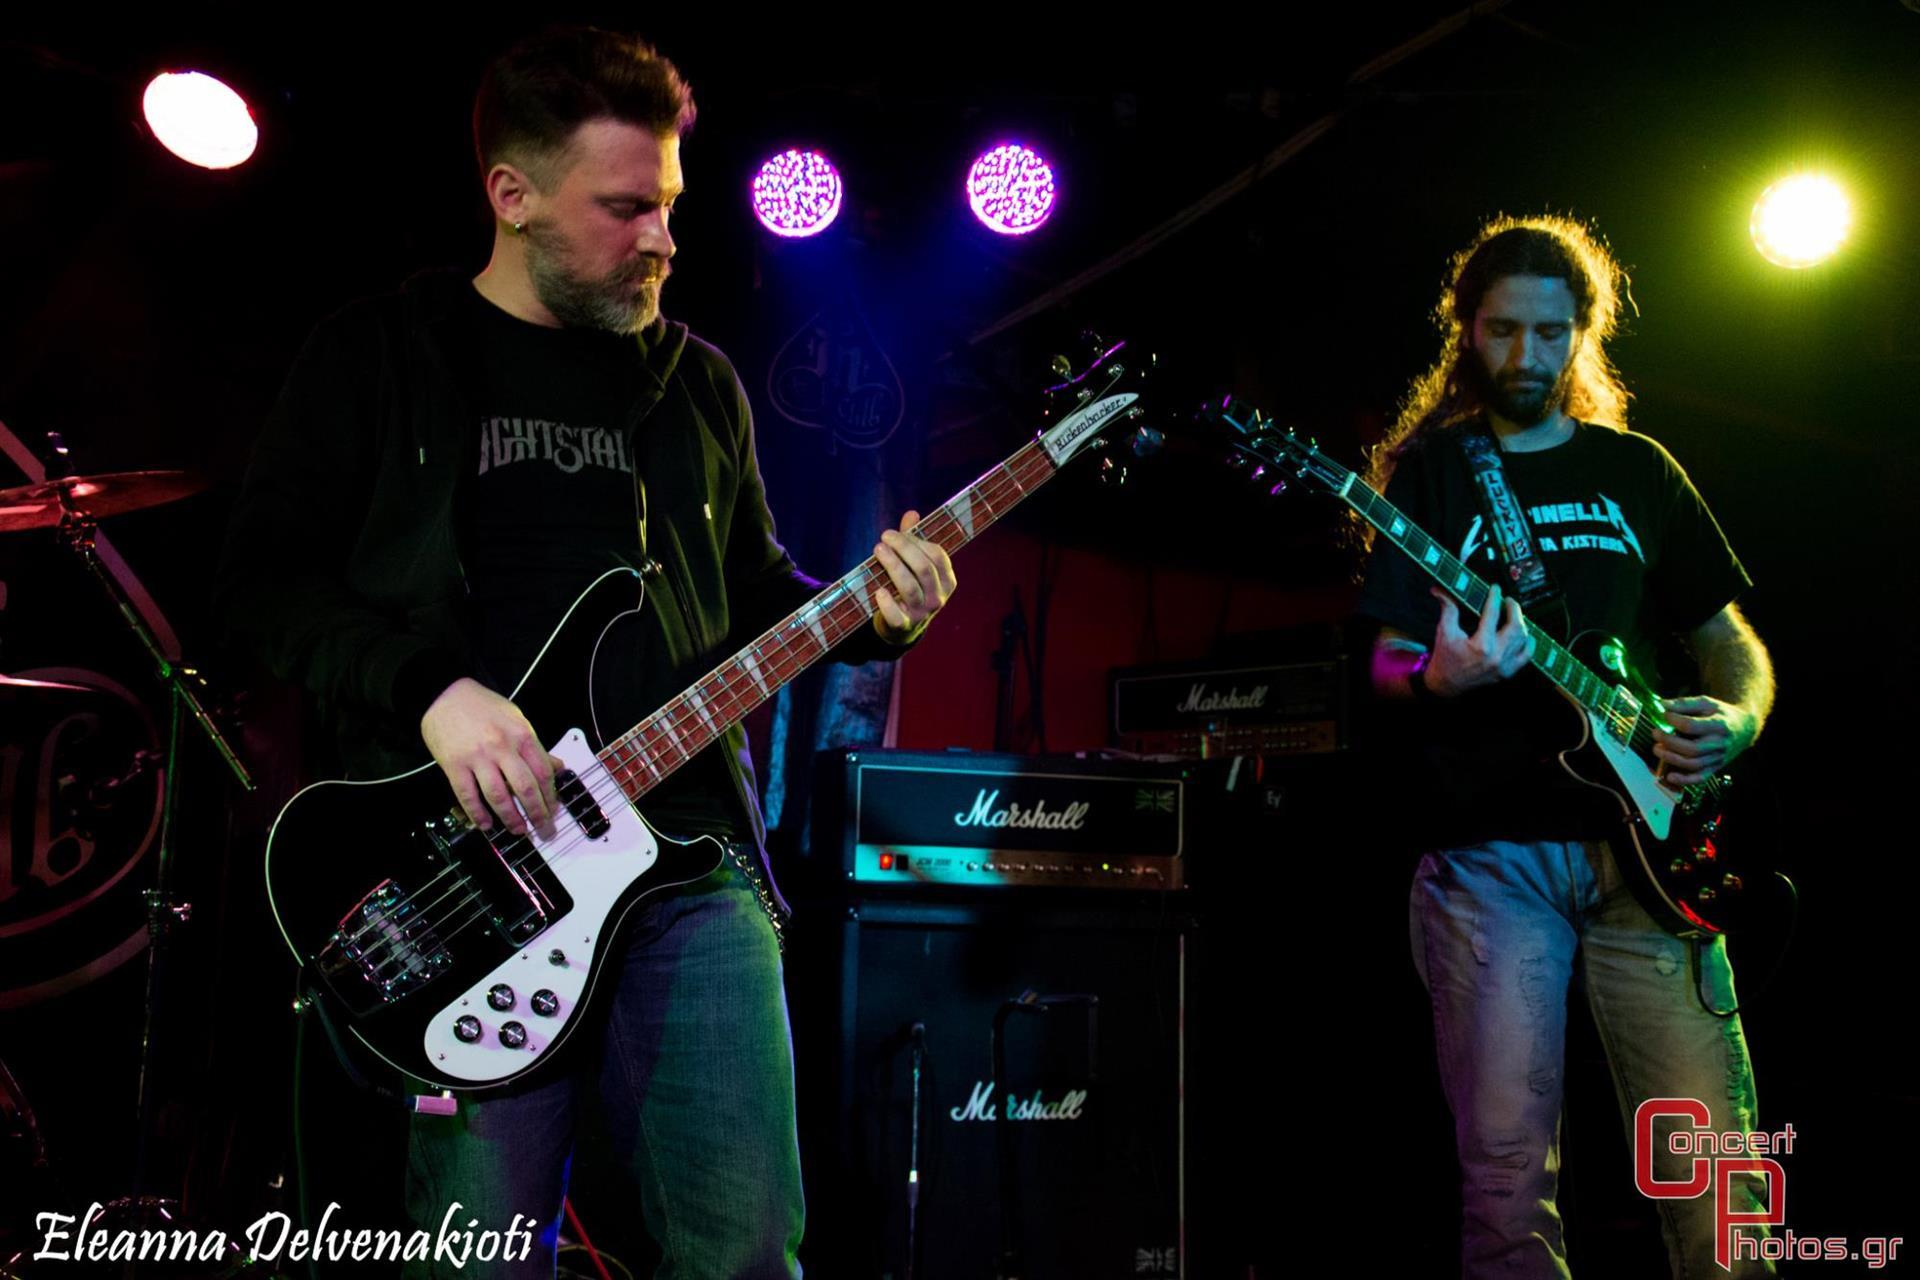 Battle Of The Bands Athens - Leg 4-test photographer:  - Battle Of The Bands-20150208-214231